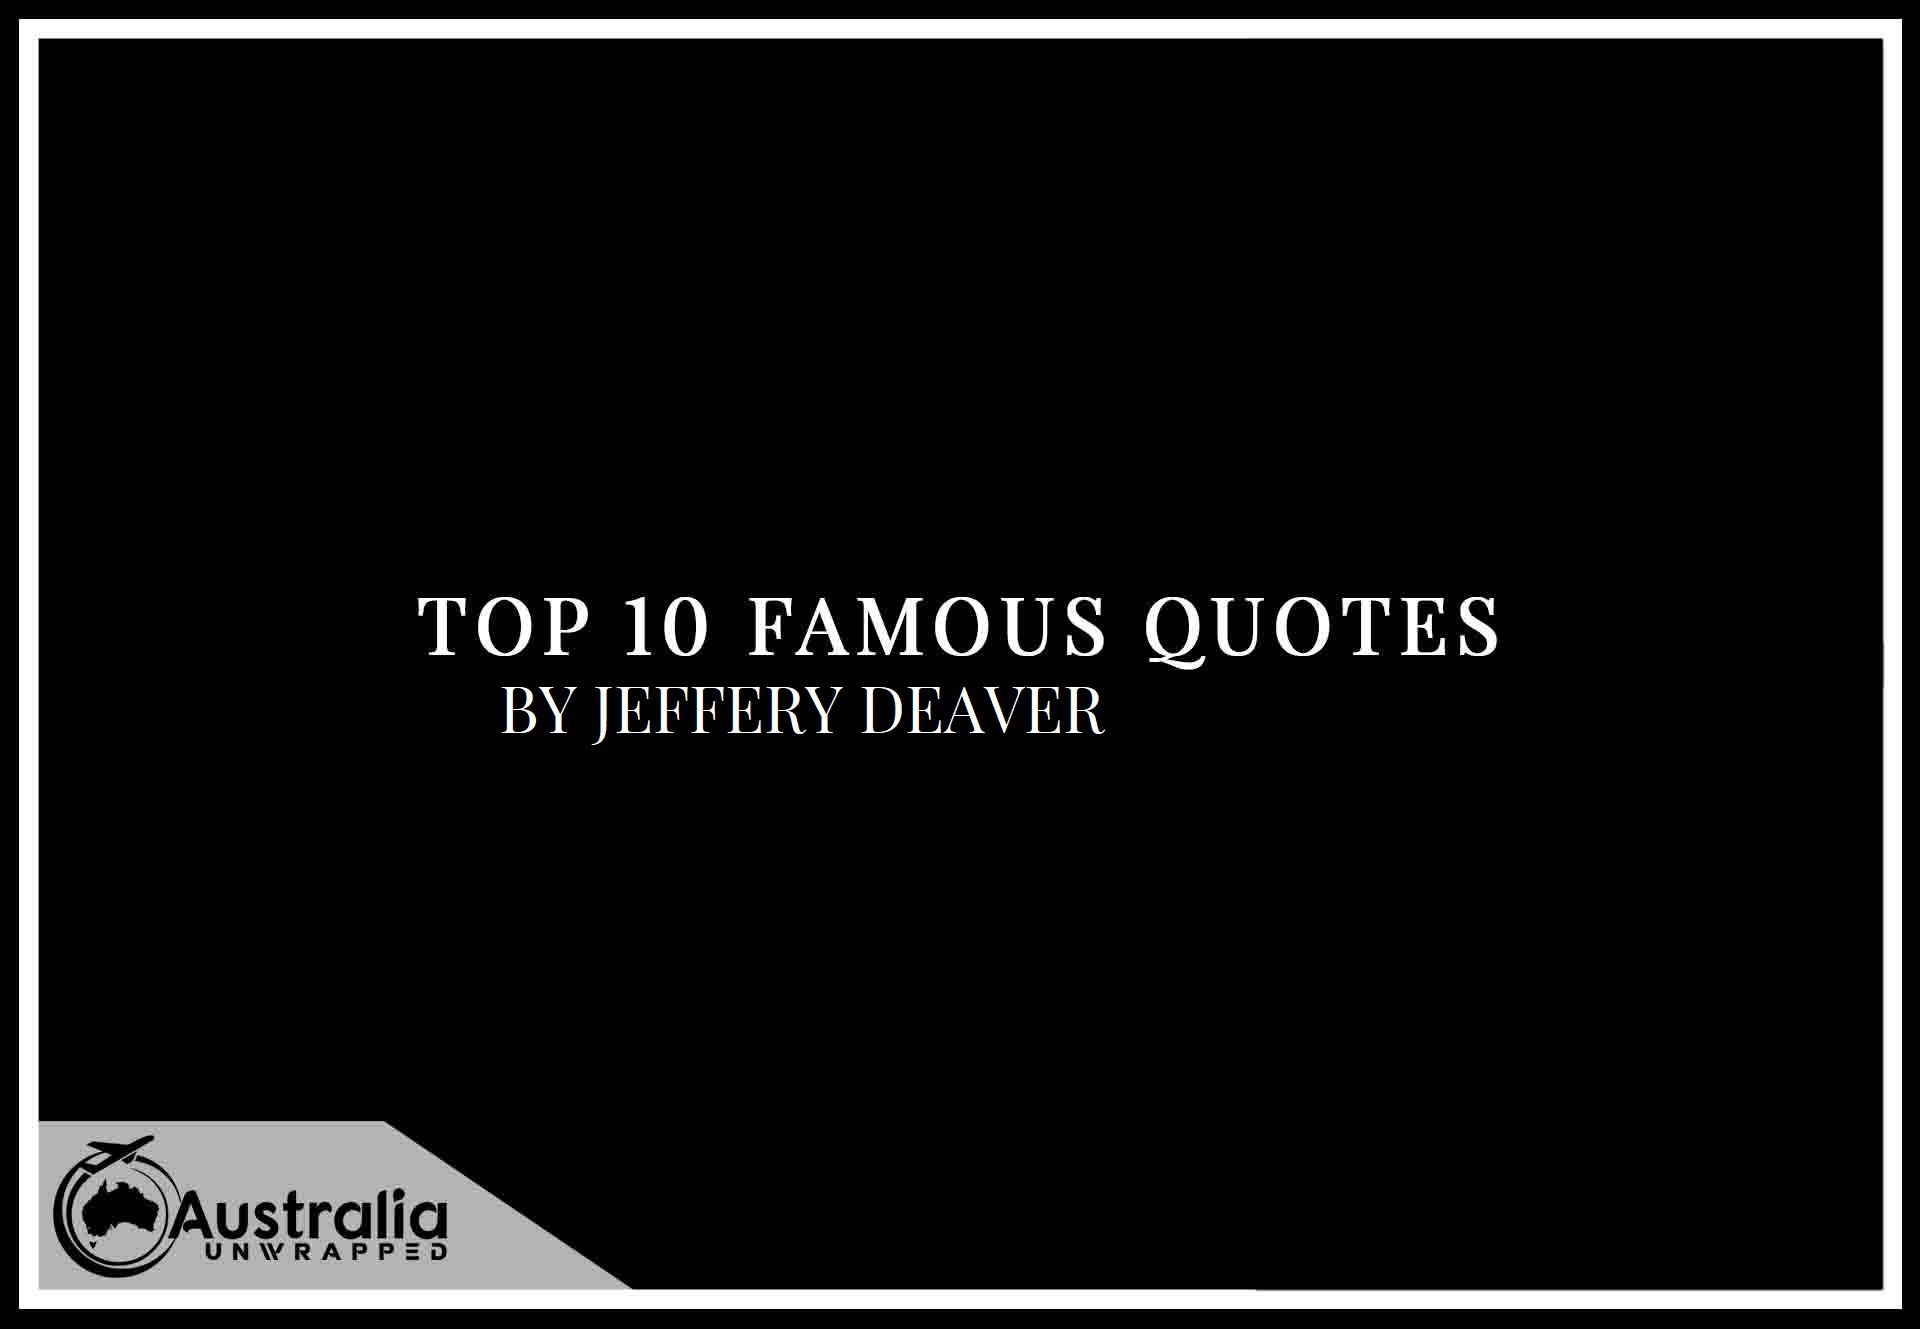 Top 10 Famous Quotes by Author Jeffery Deaver